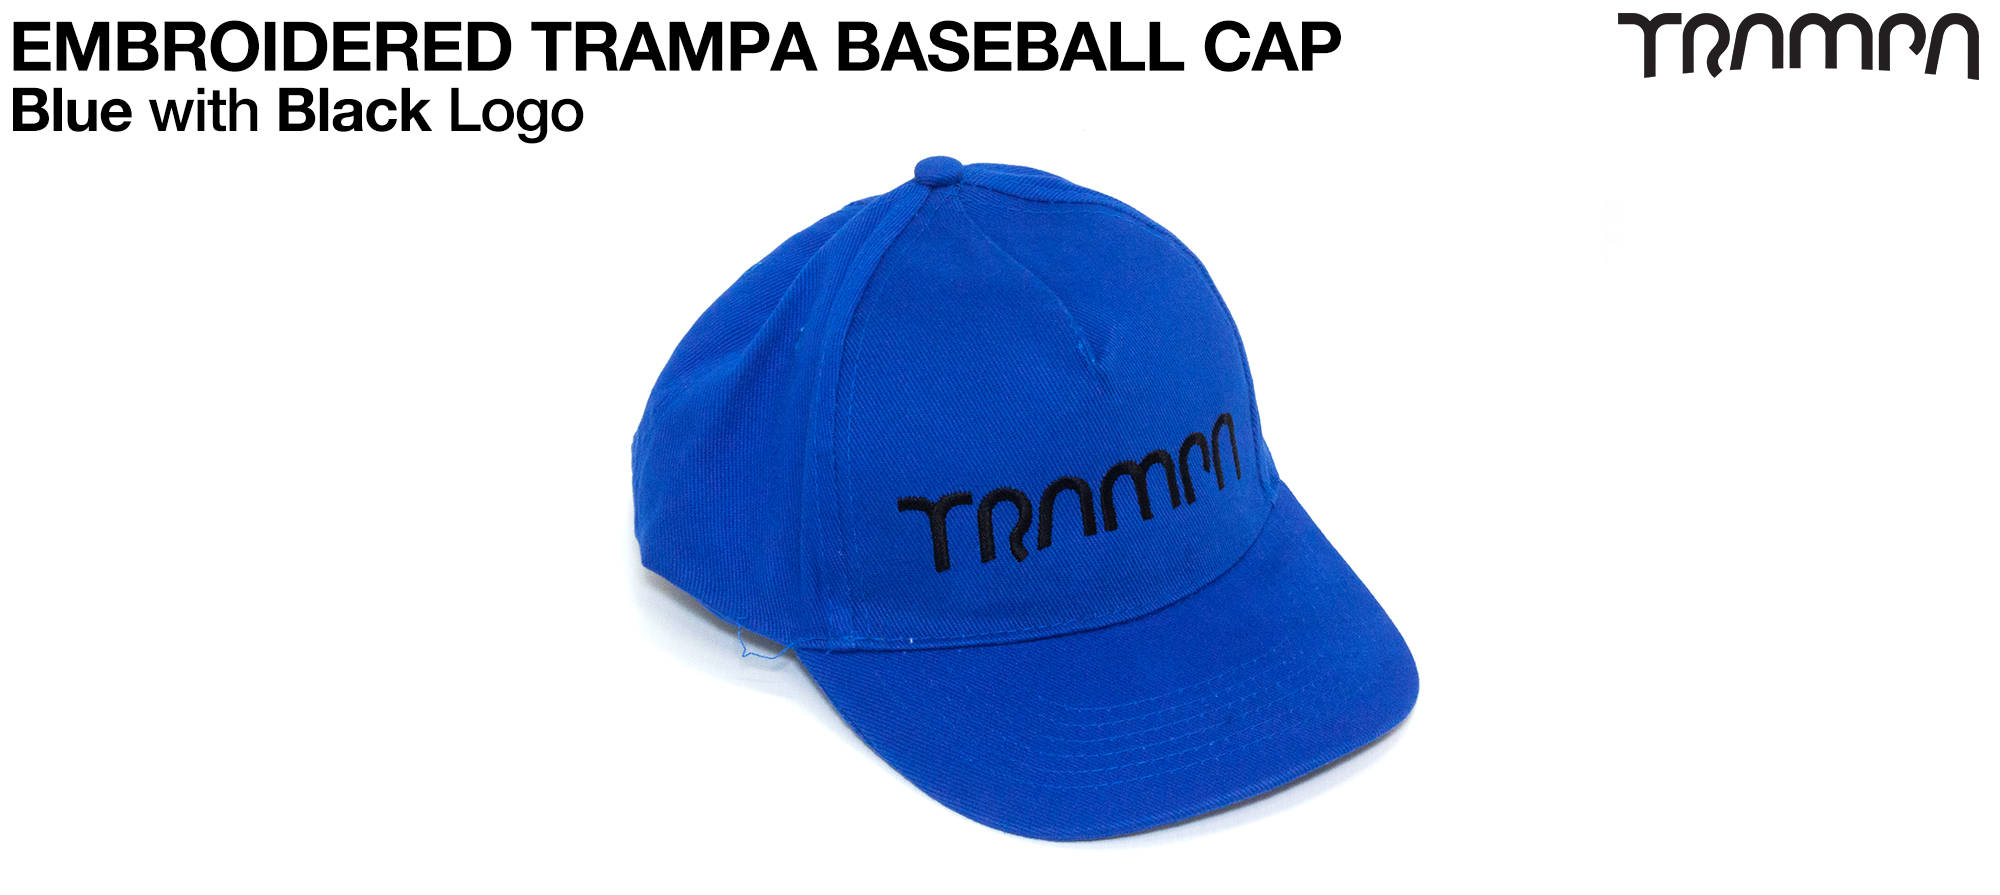 BLUE Baseball Cap with BLACK logo embroidered